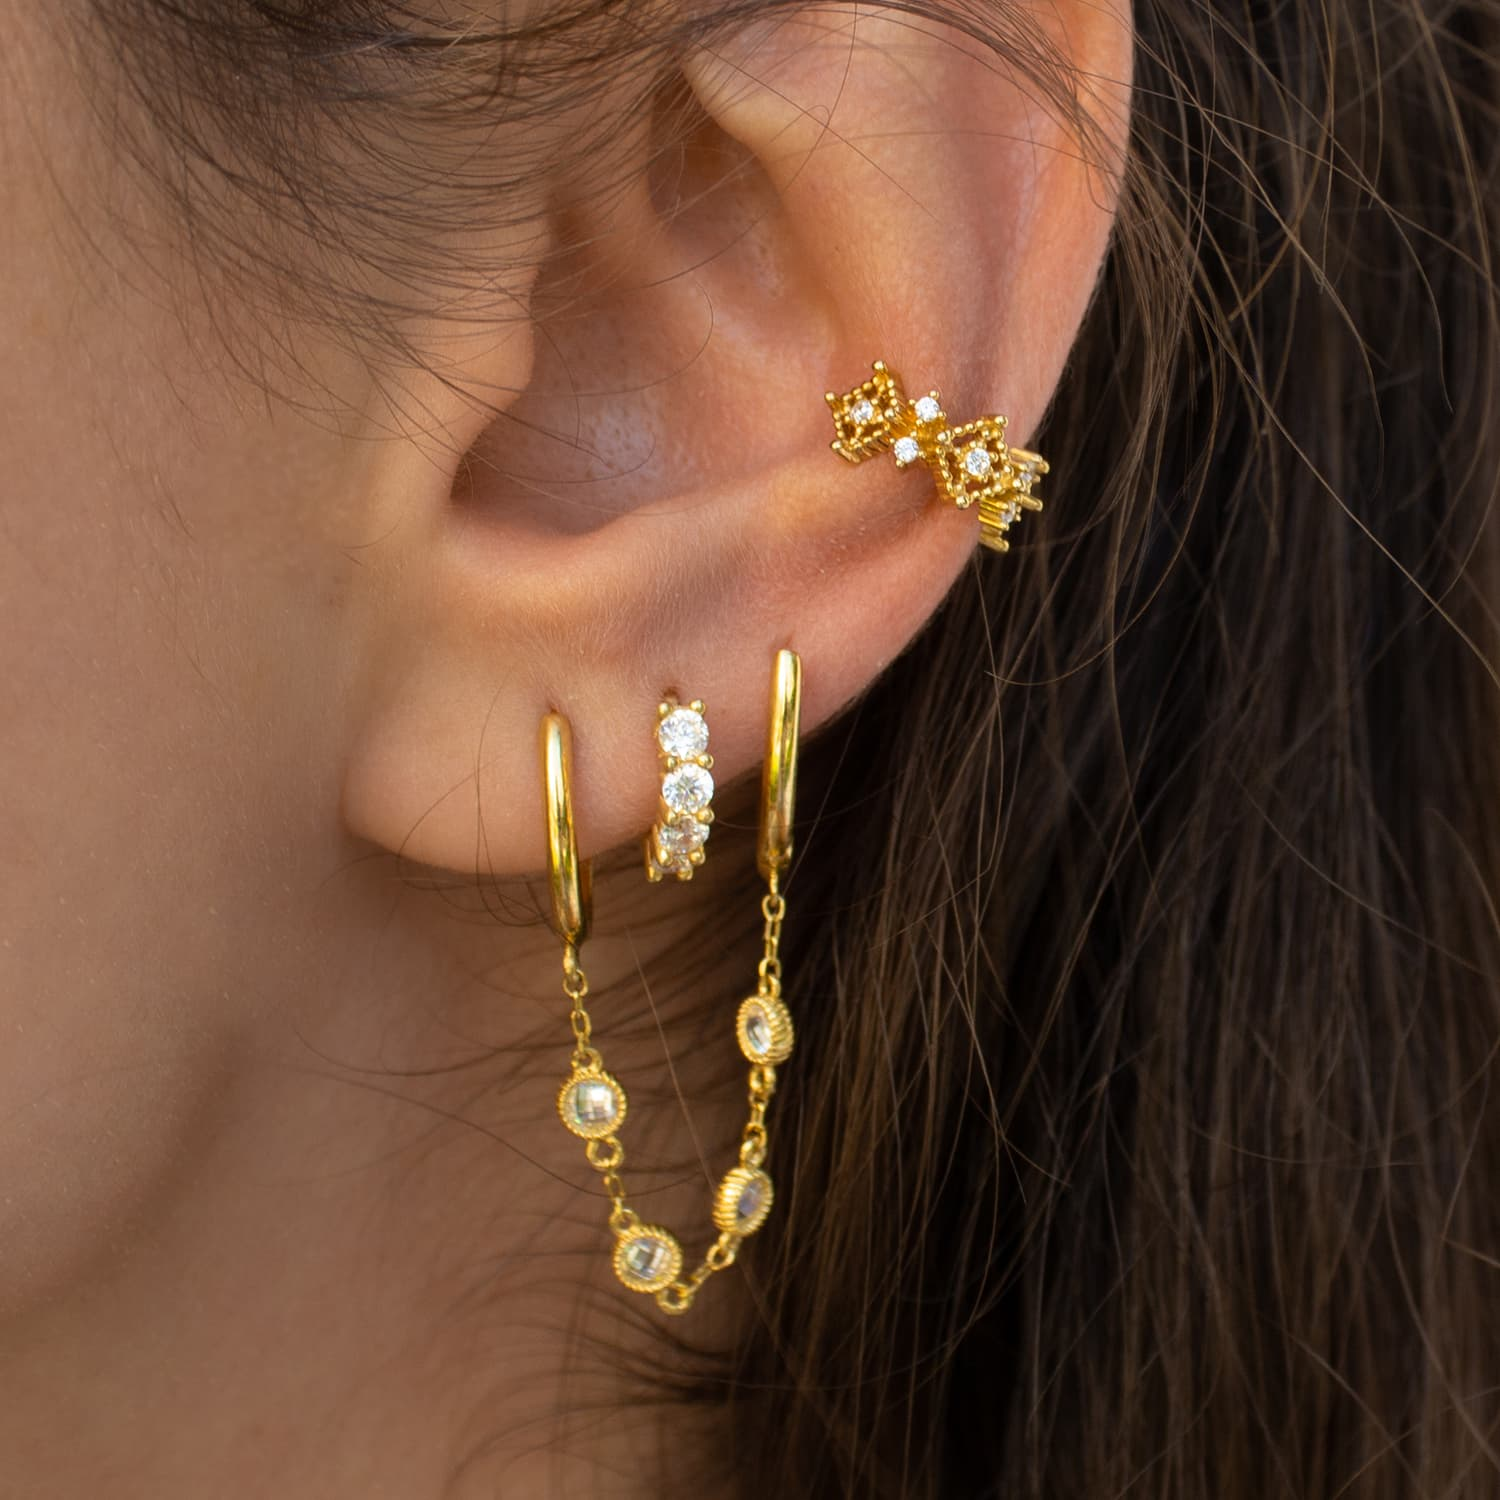 Real gold plated hoop earrings models on silver